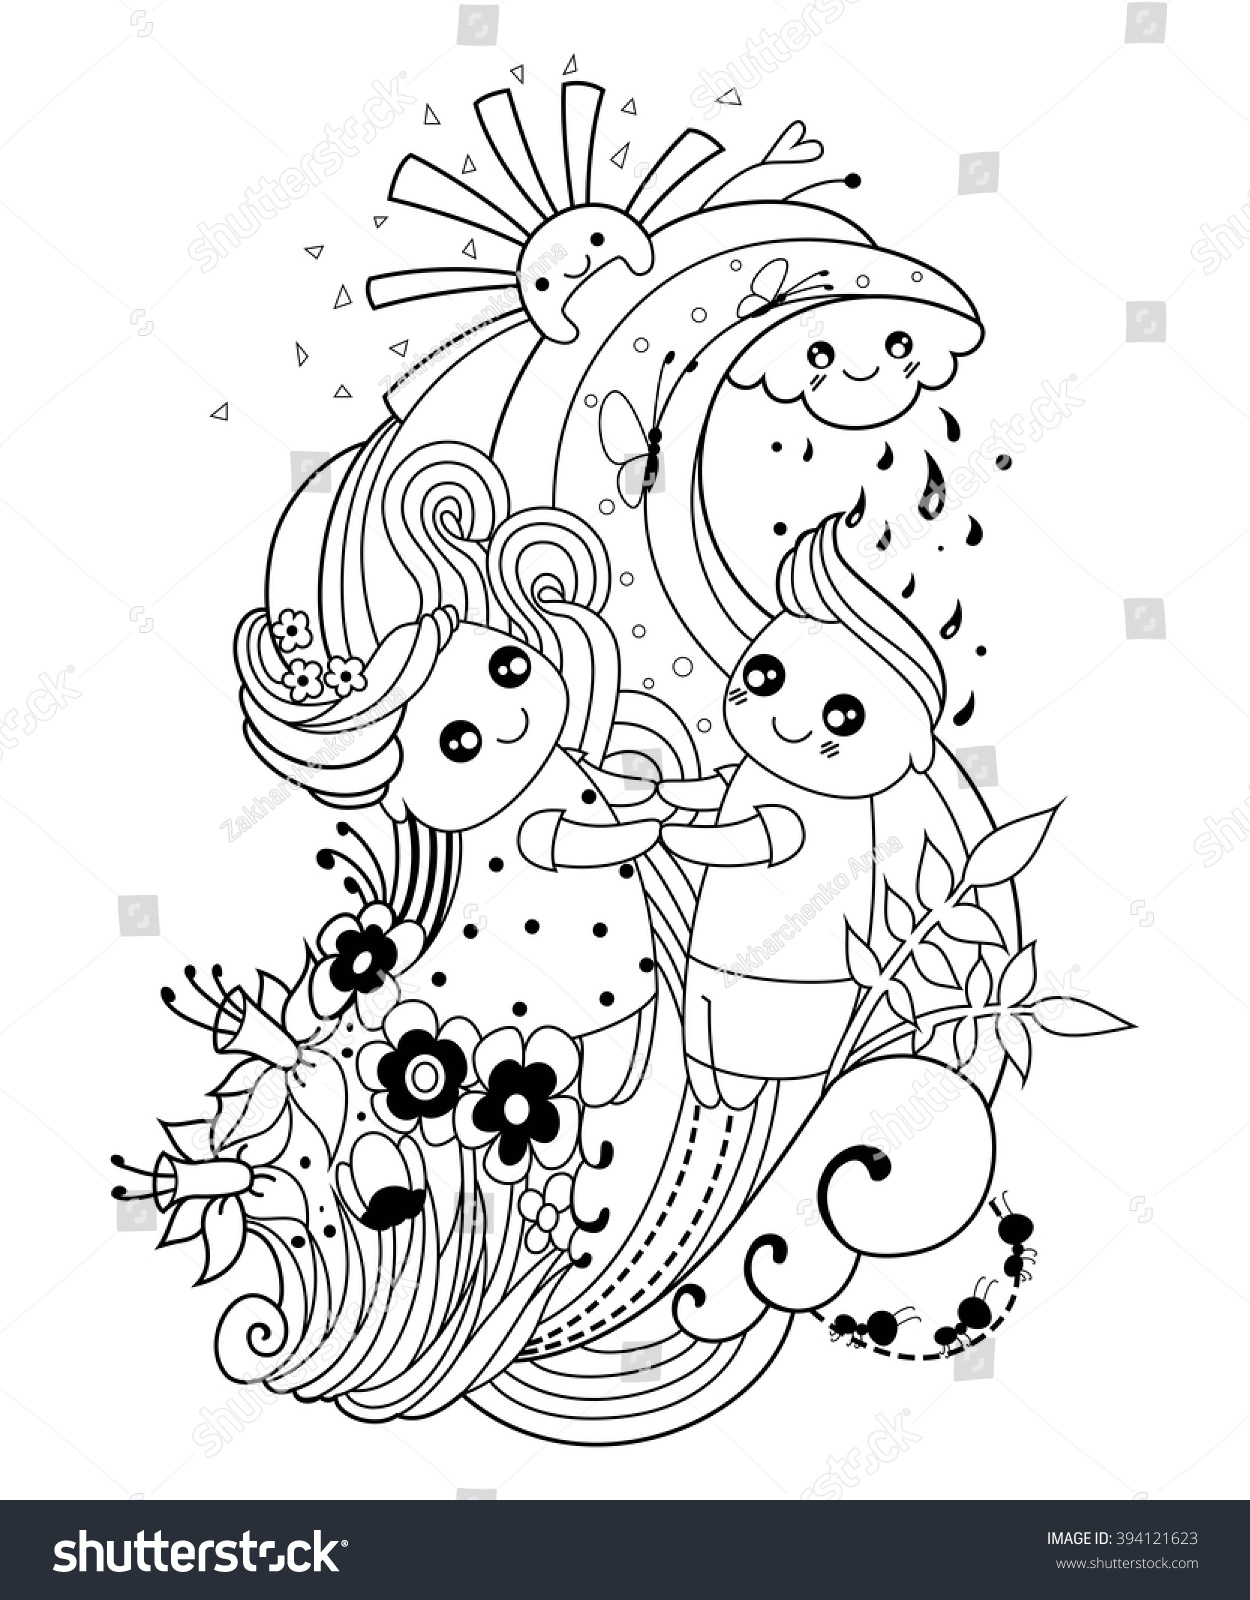 Spring rain coloring pages - Adult Coloring Page With Boy And Girl Cloud Sun Rain Flowers